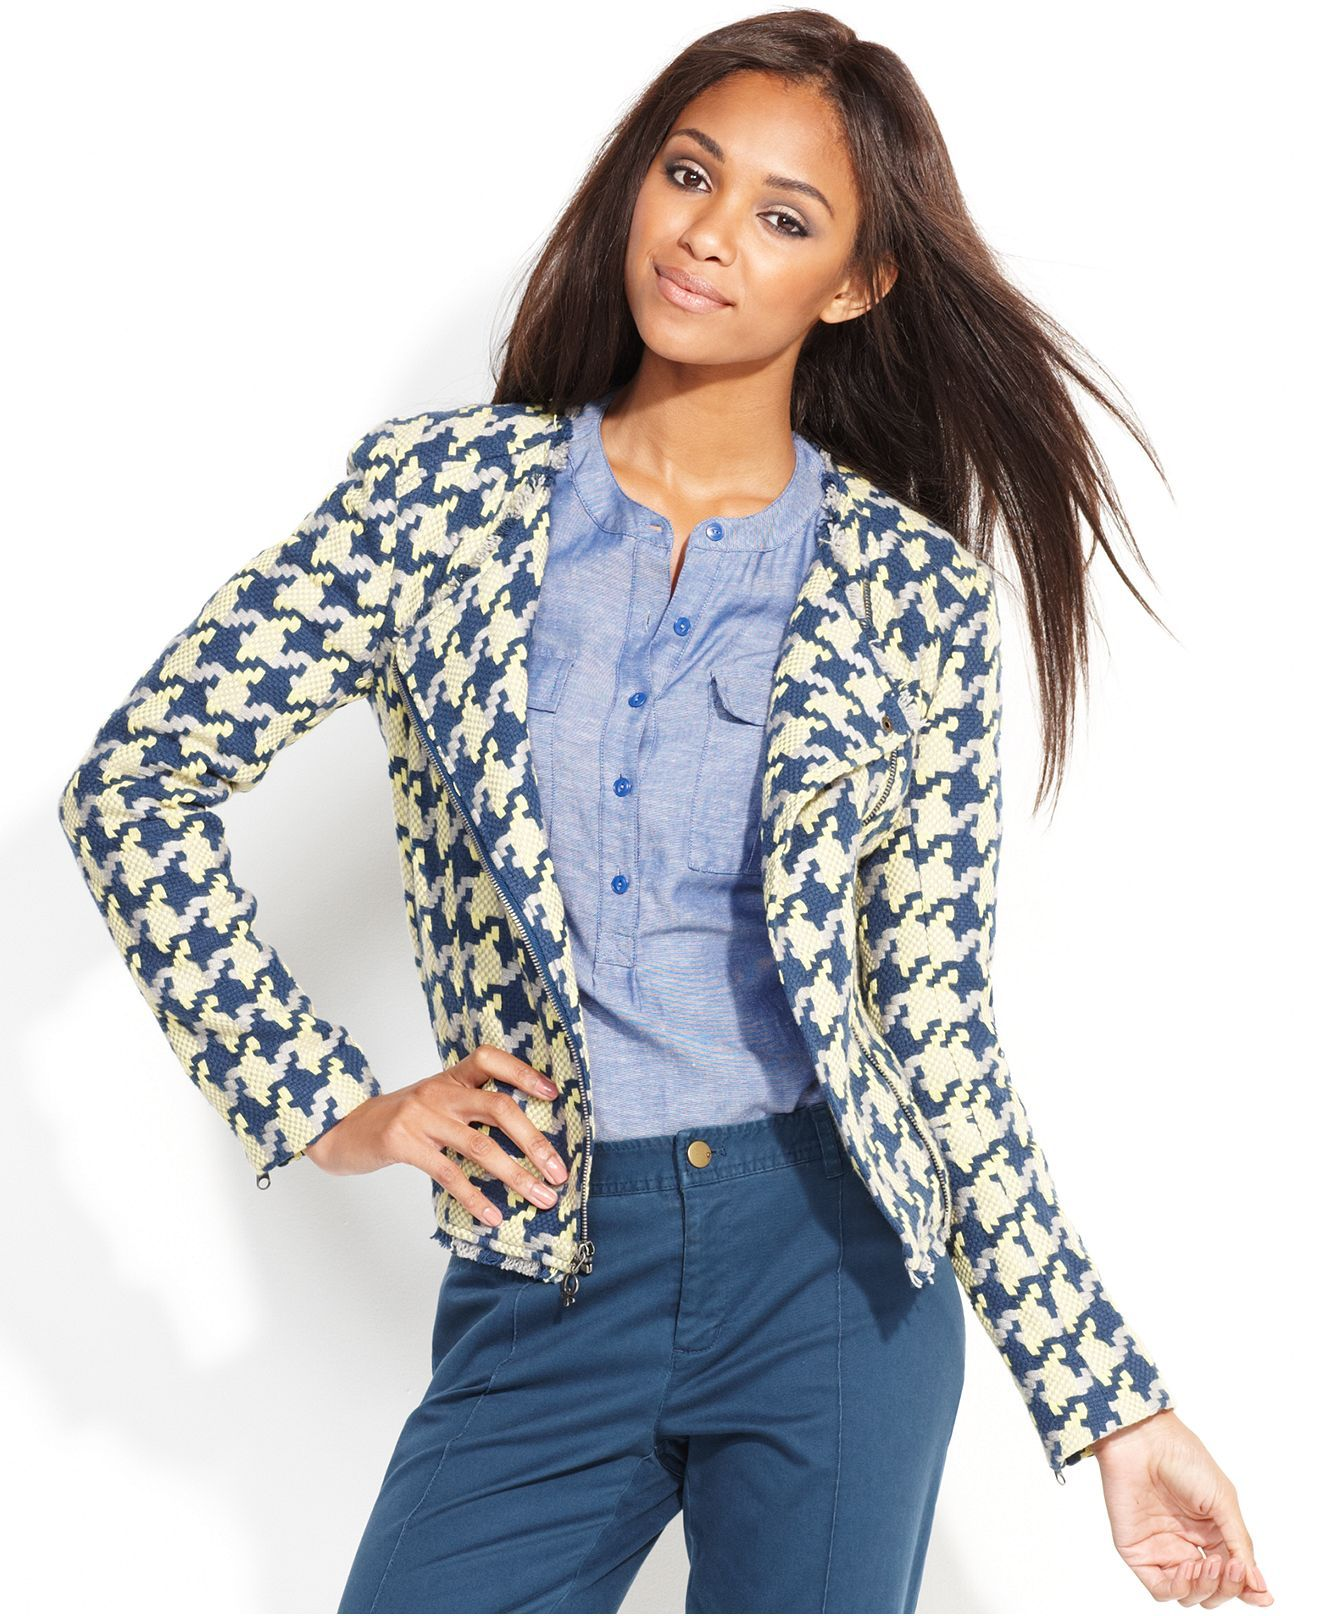 QMack Jacket, Long-Sleeve Houndstooth - Jackets & Blazers - Women ...